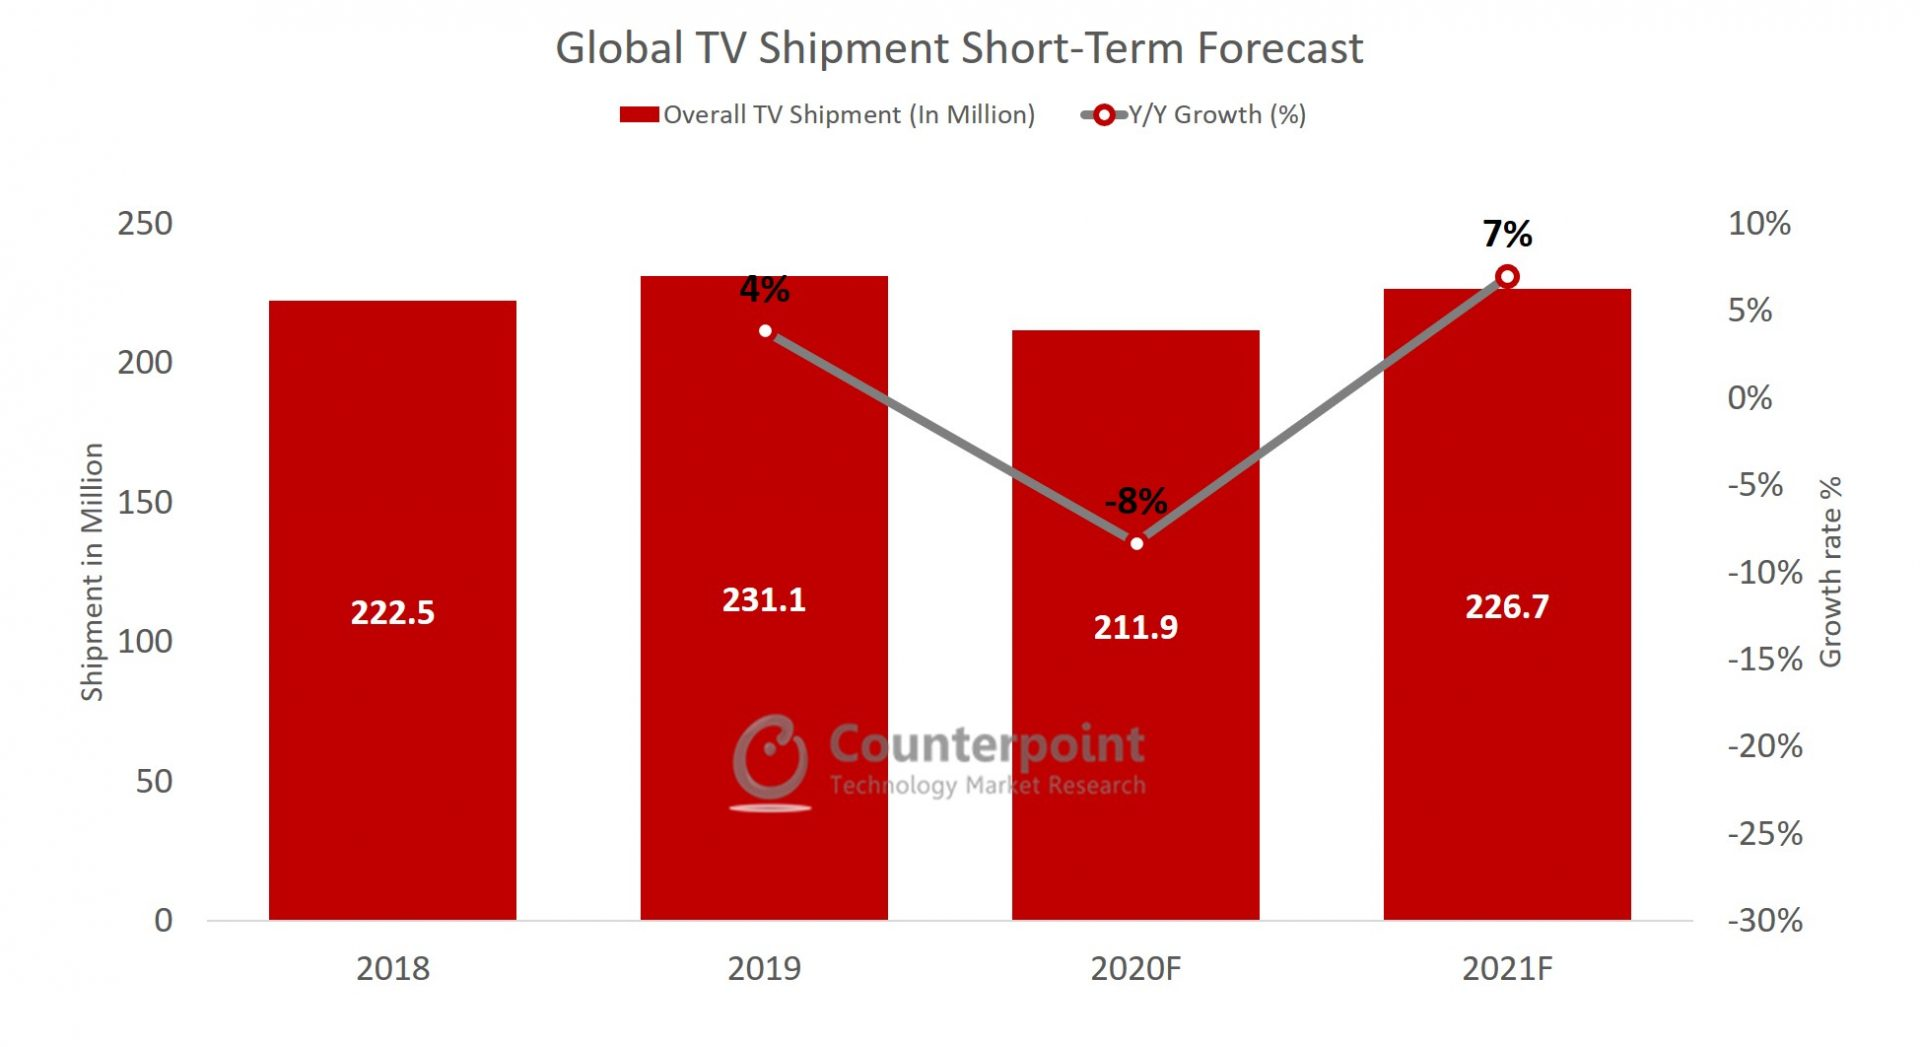 Counterpoint Global TV shipments forecast under COVID-19 outbreak (impact on global TV market)